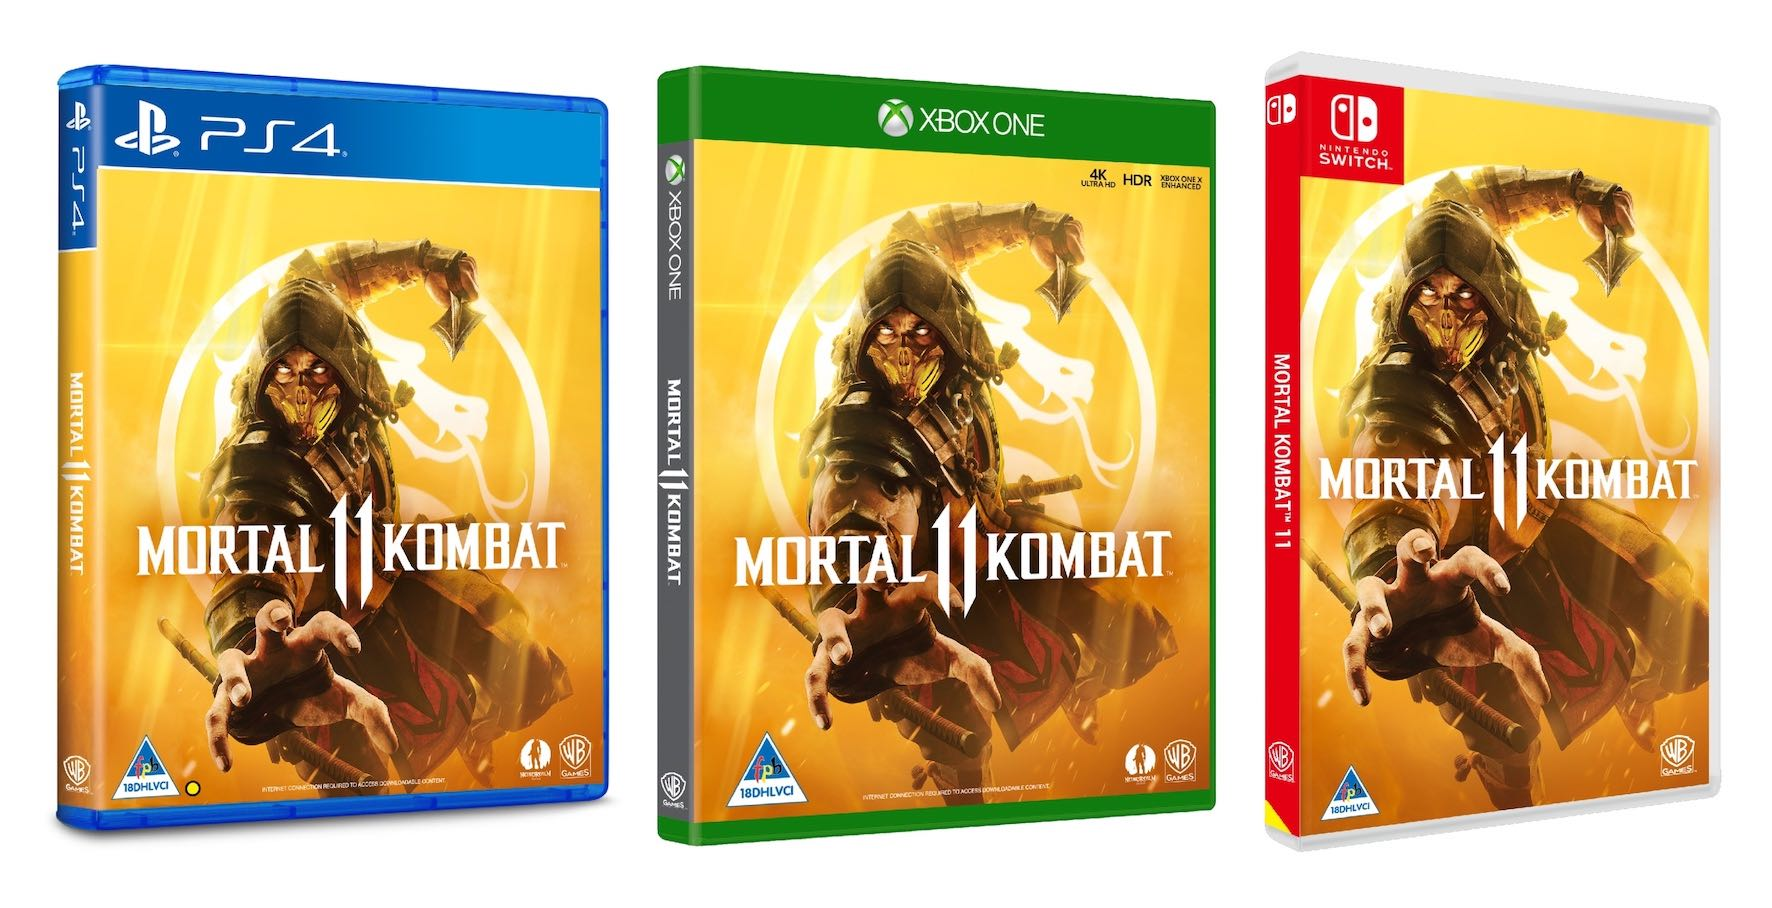 Mortal Kombat 11 avaiable now for Playstation 4, Xbox One and PC